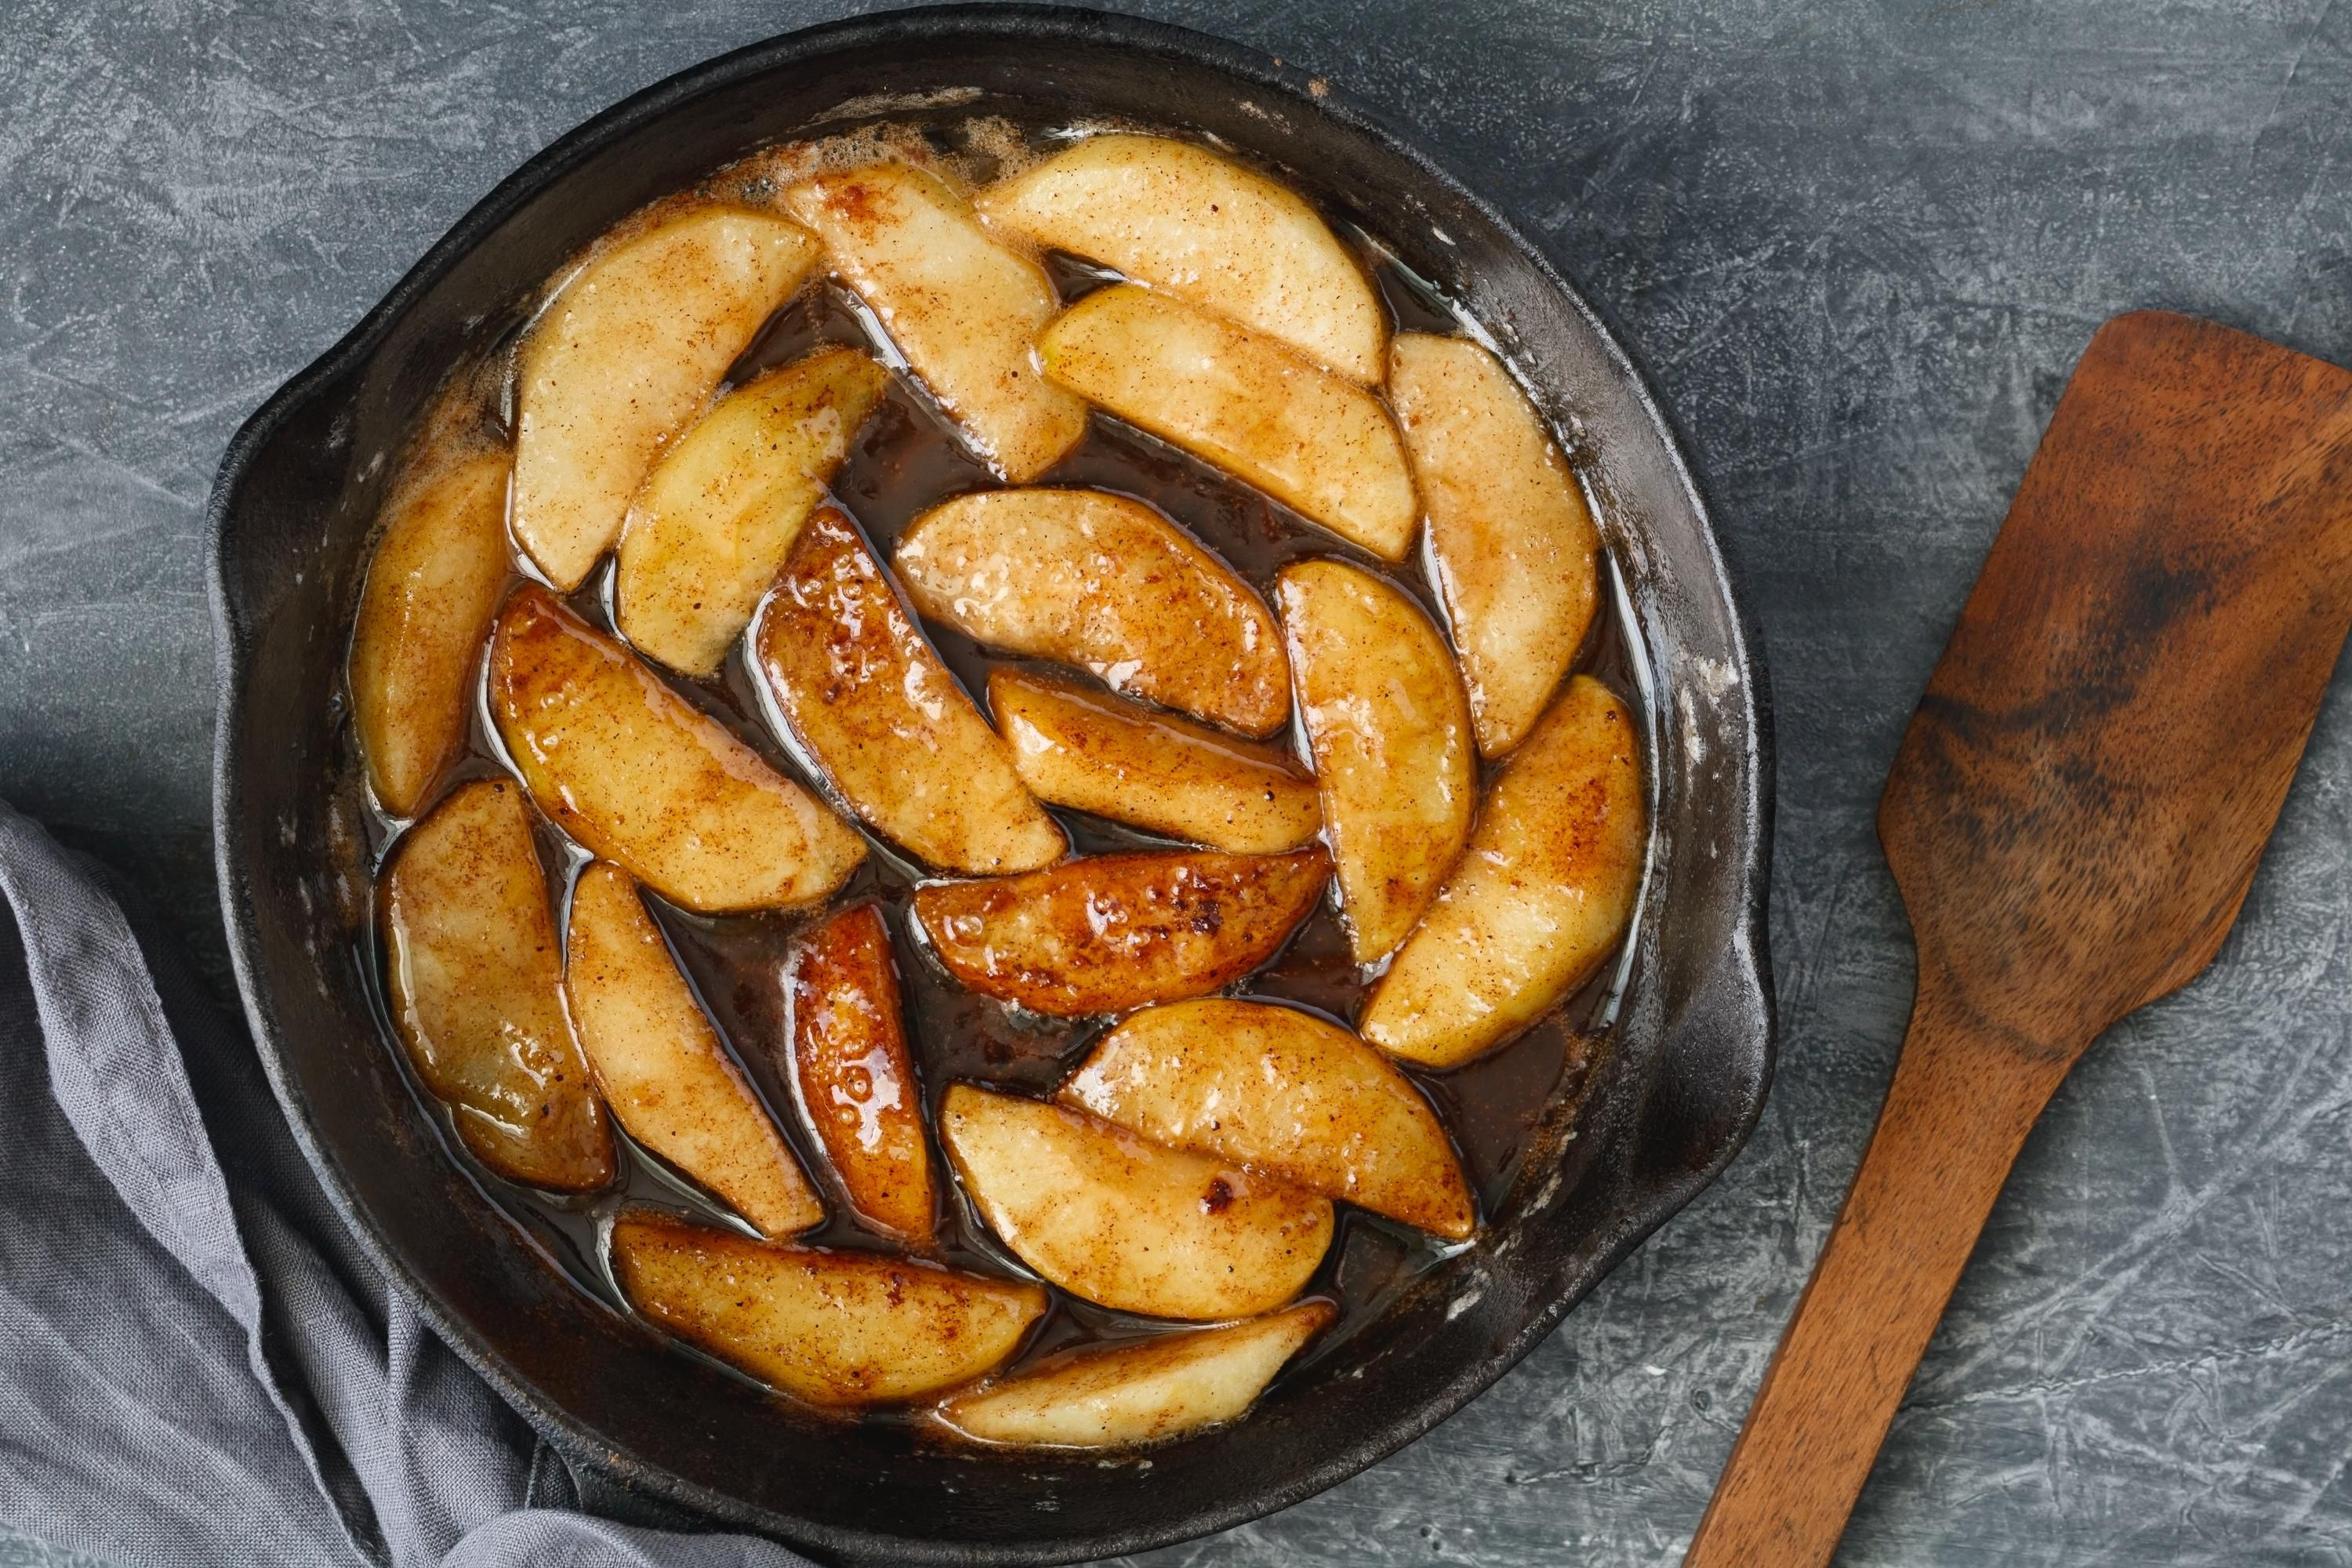 Browned apples in syrup